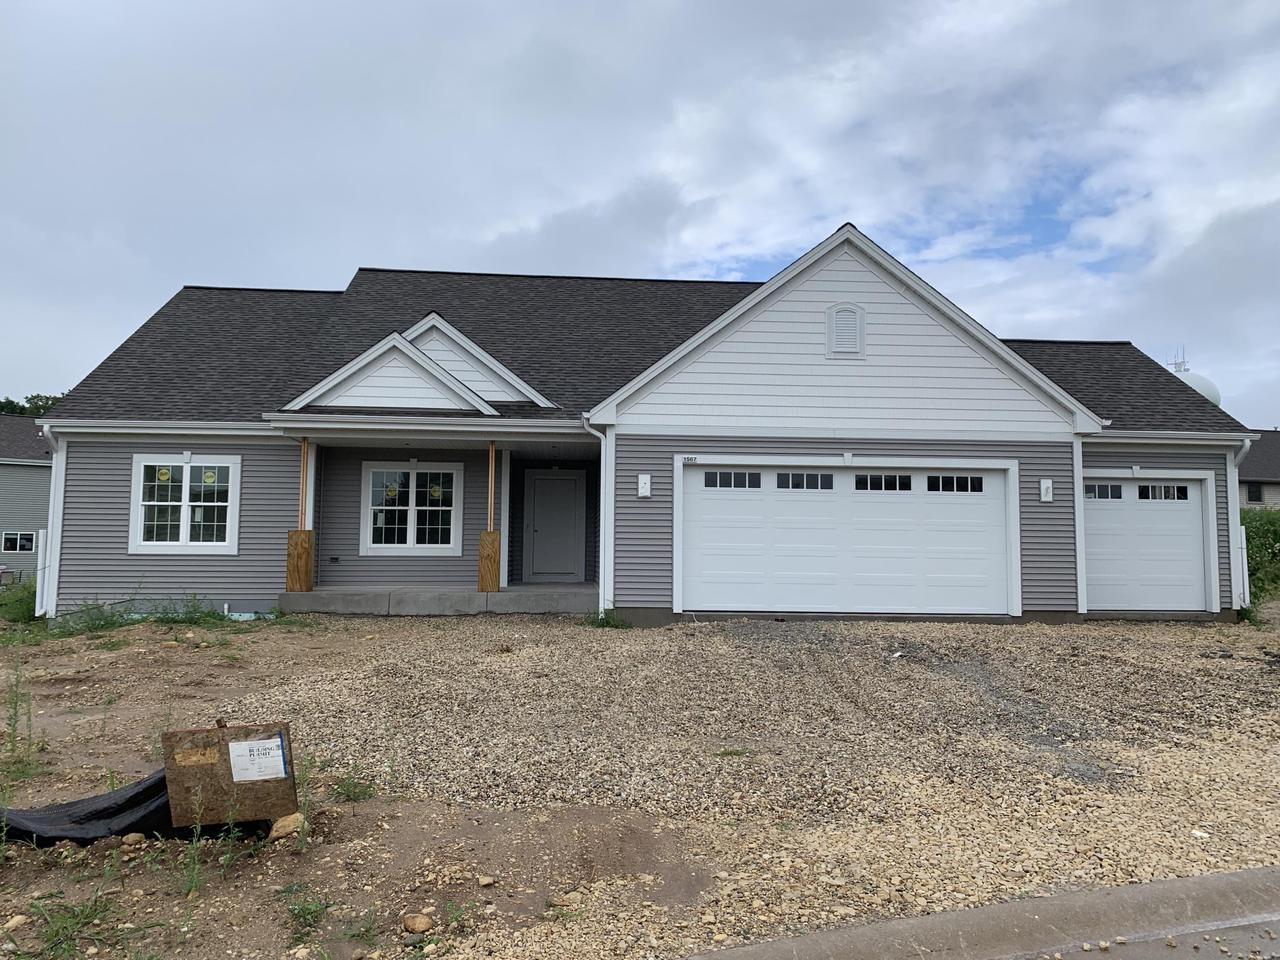 NEW CONSTRUCTION by Stepping Stone Homes. The Emery in Autumn Ridge will welcome you w/it's open concept. Superior quality w/2x6 exterior framing including amazing upgrades like soft close dovetail cabinetry, quartz/marble counter tops, double sinks in the bathrooms, upgraded flooring, 8 foot garage doors & more! This home comes equipped with Smart Home Technology, including integrated lighting, door locks, ecobee smart thermostat, video doorbell, Lift Master garage door, all of which you can control from your mobile device! Make sure your garage door is closed & the lights are off when you're away. Concrete driveway and lawn are included also!  THREE car garage and egress window.